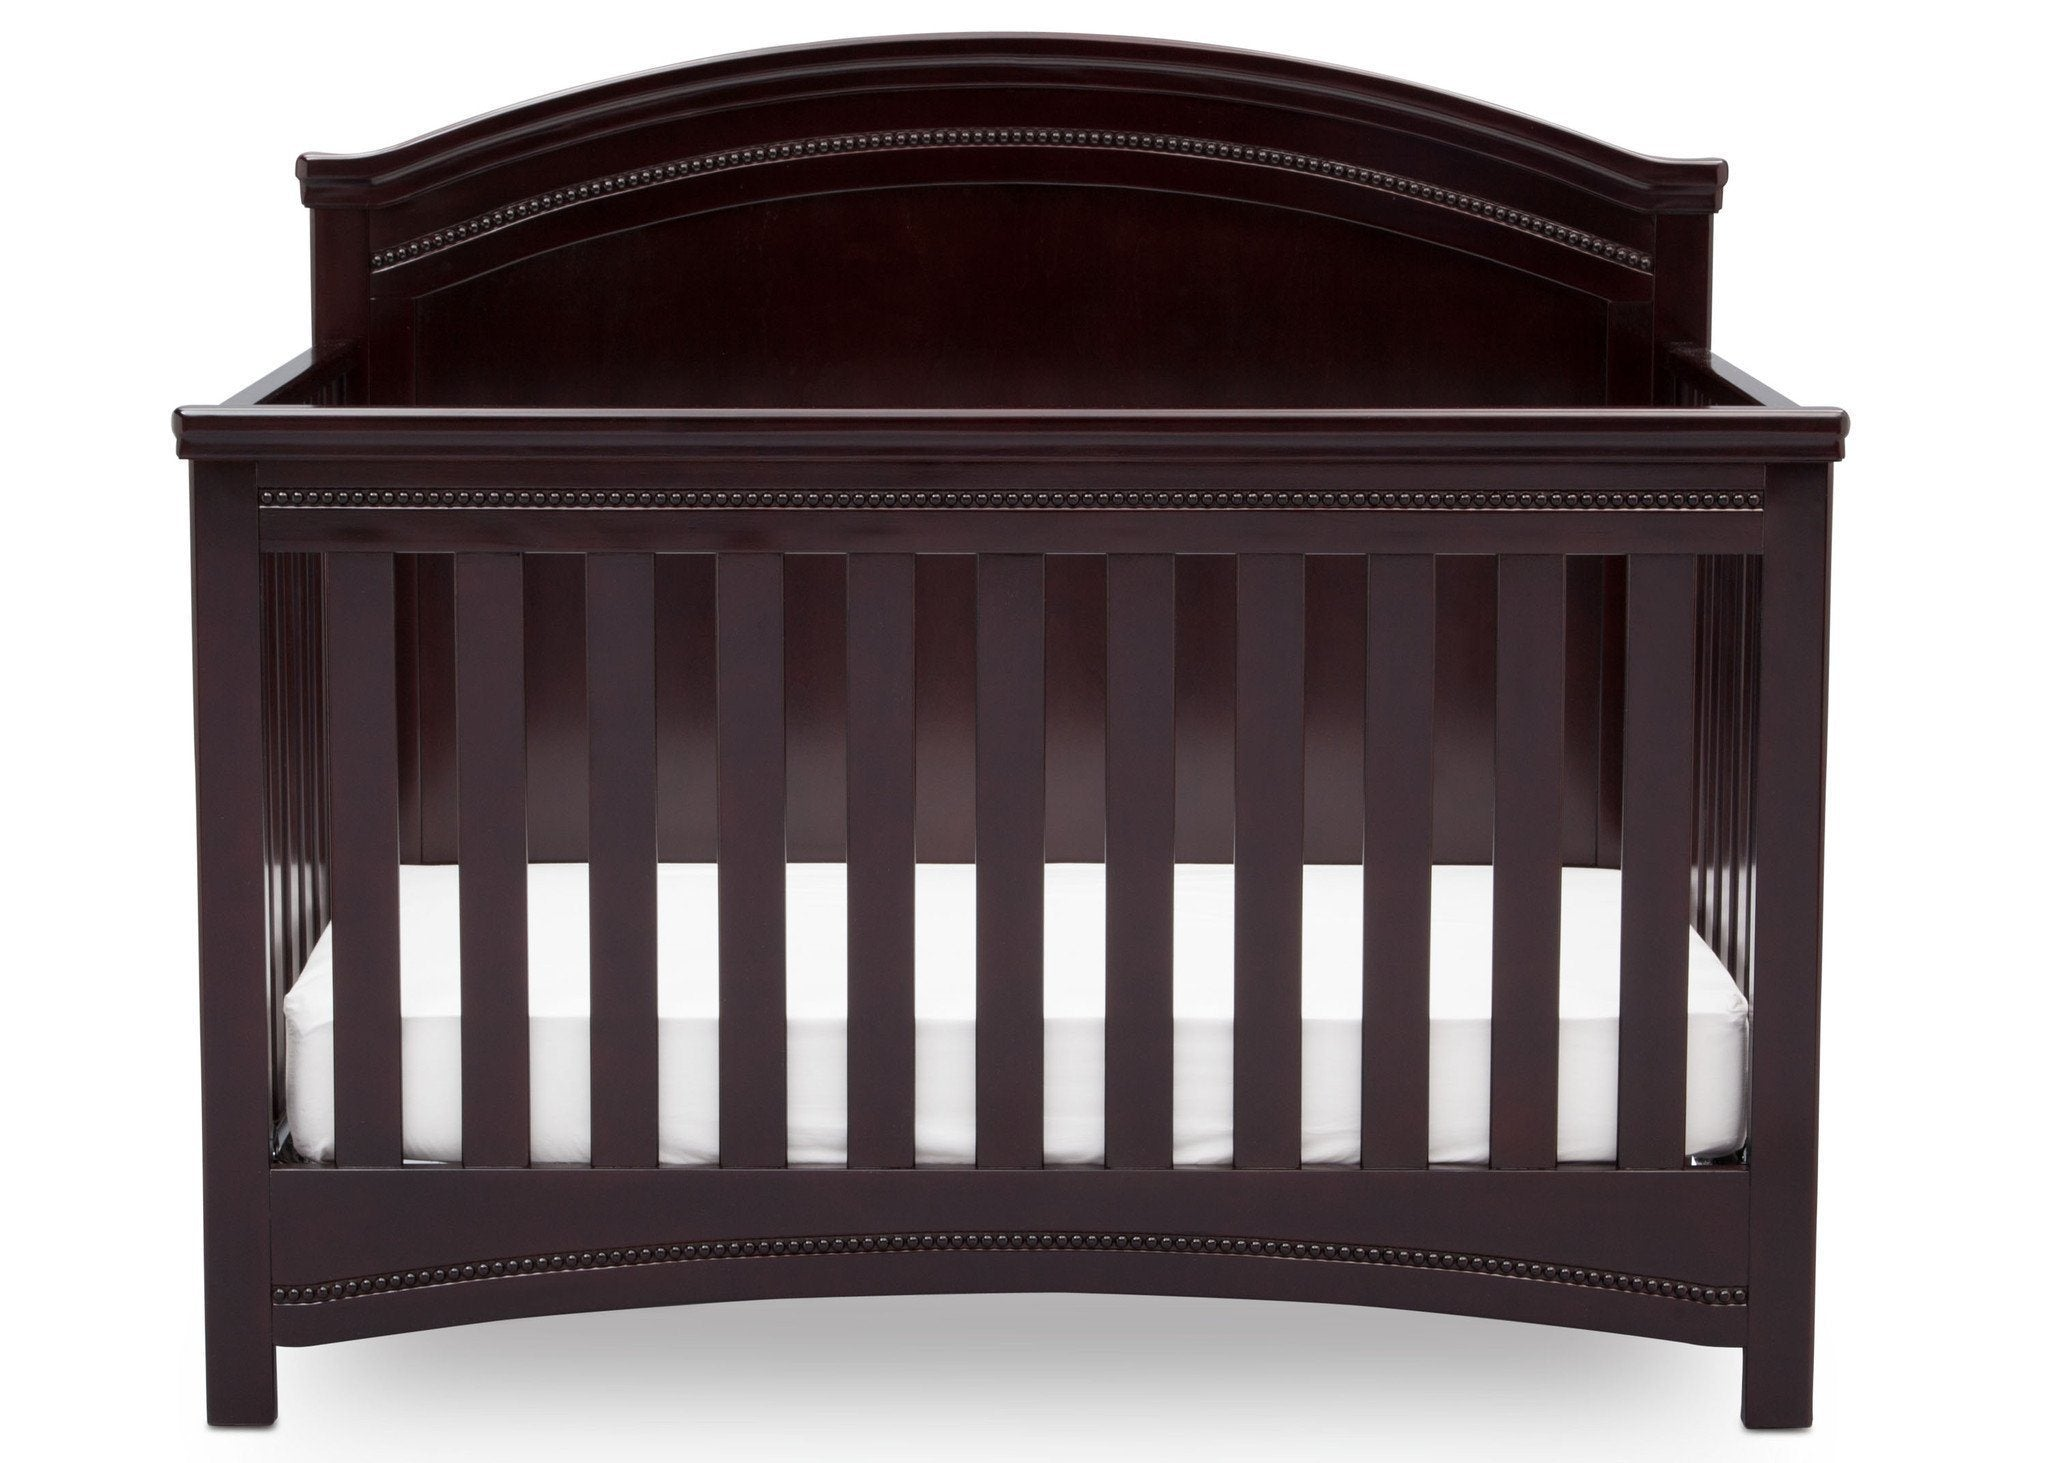 Simmons Kids Black Espresso (907) Emma Crib 'N' More Front Facing View b2b